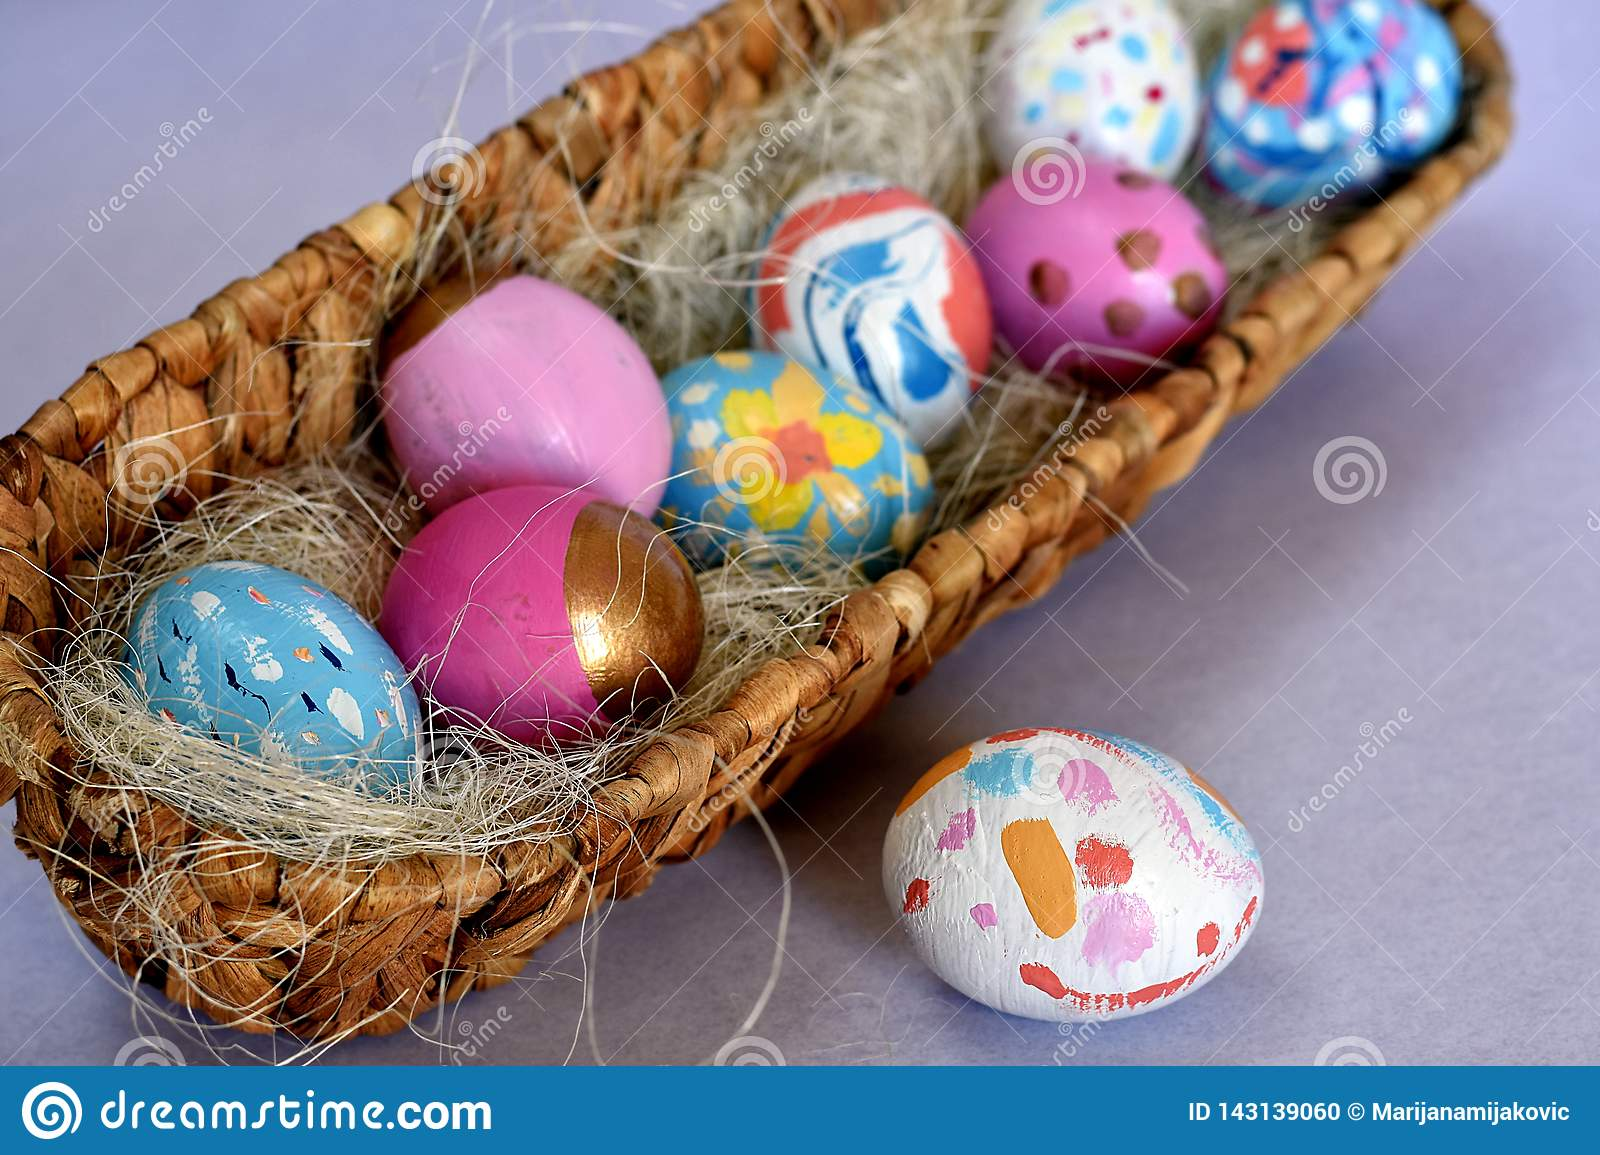 Oval basket full of brightly colored Easter eggs with one white spotted egg beside